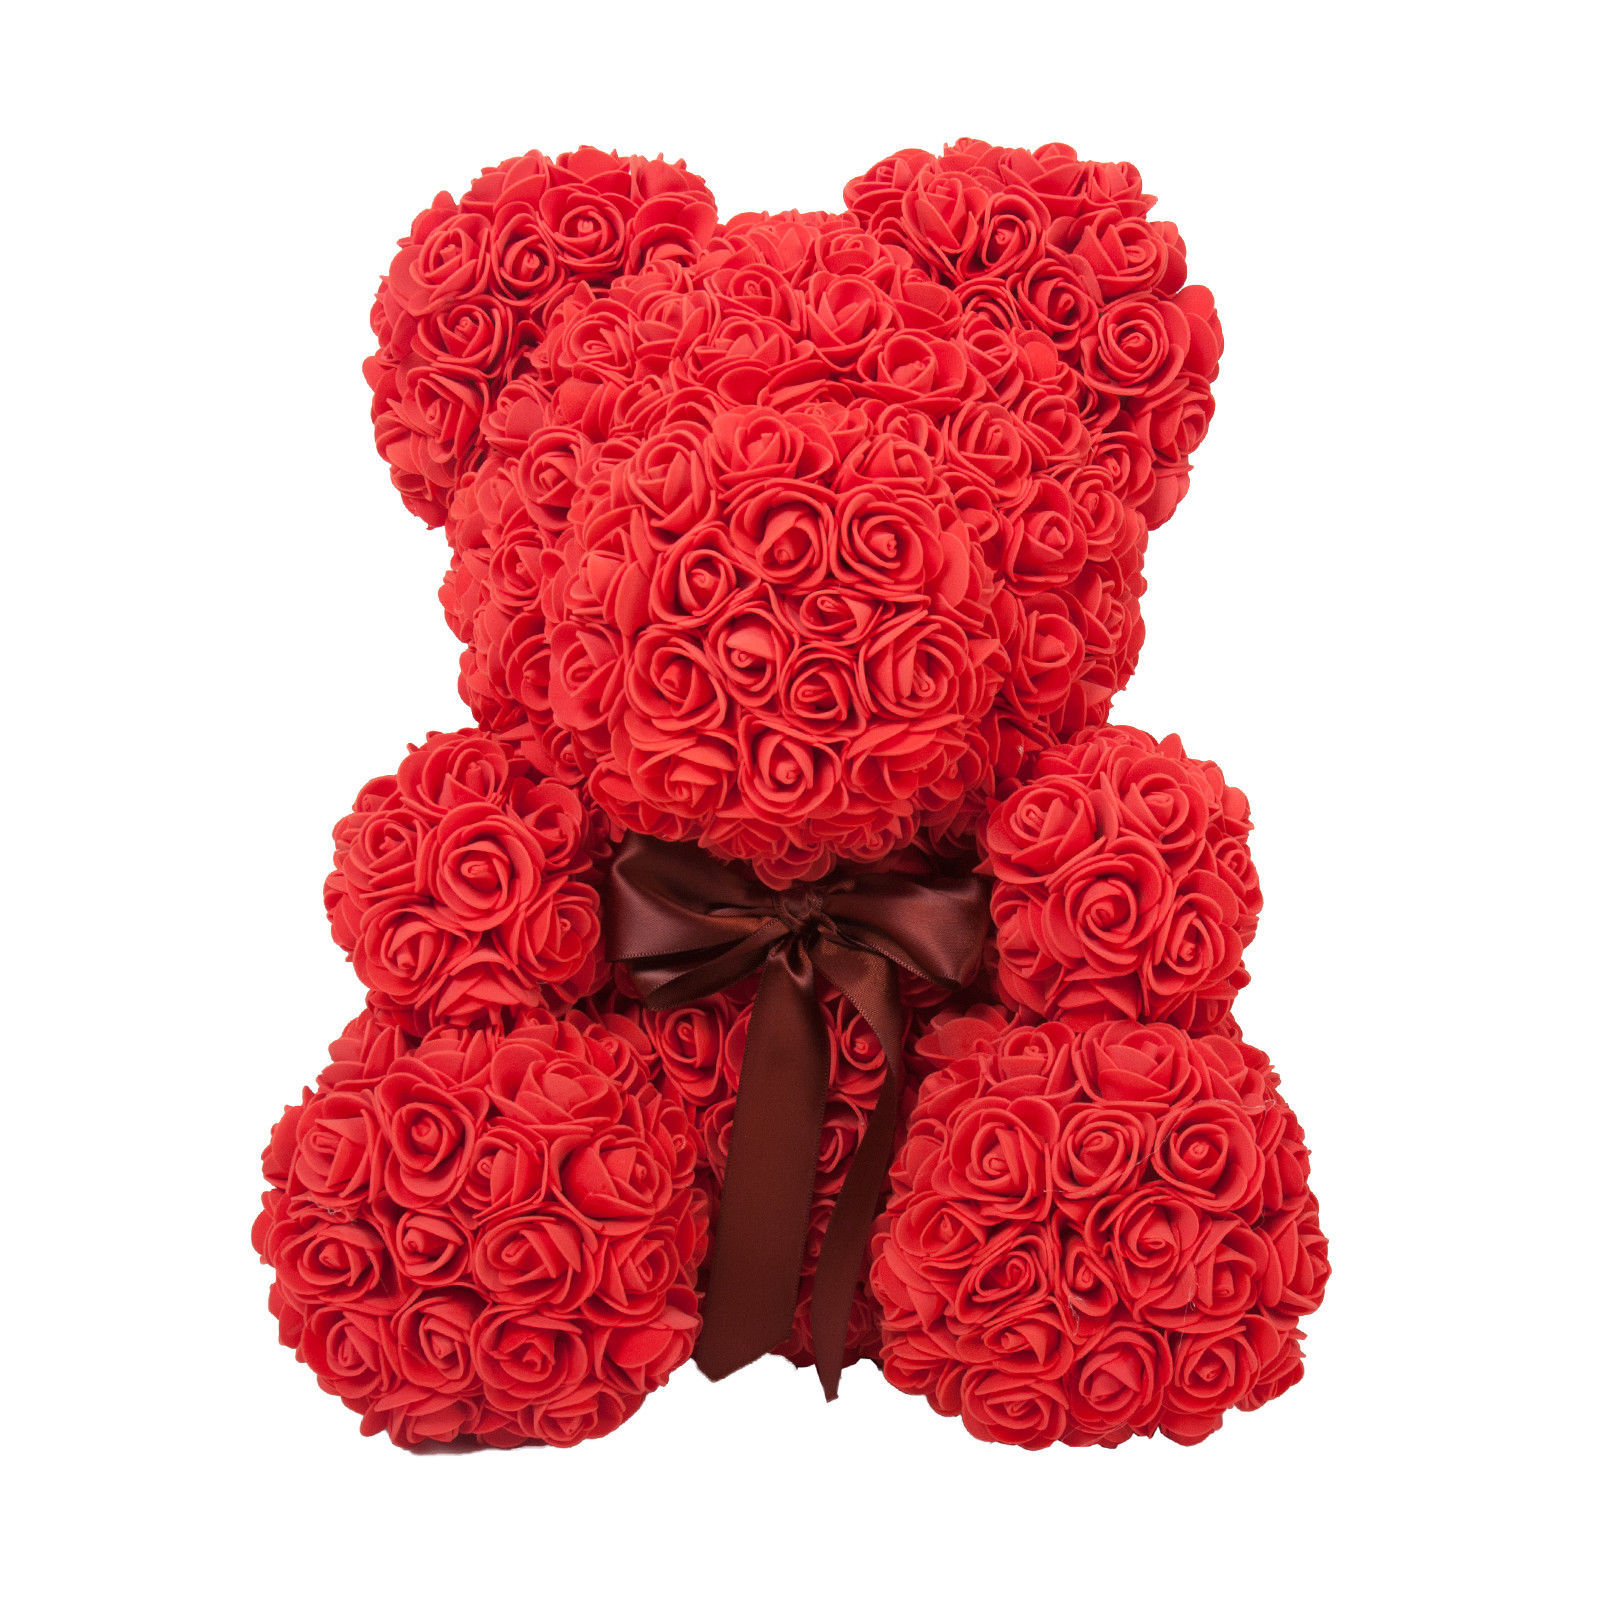 The Original Rose Bear for Birthday, Graduation, Wedding, Flower, Bear